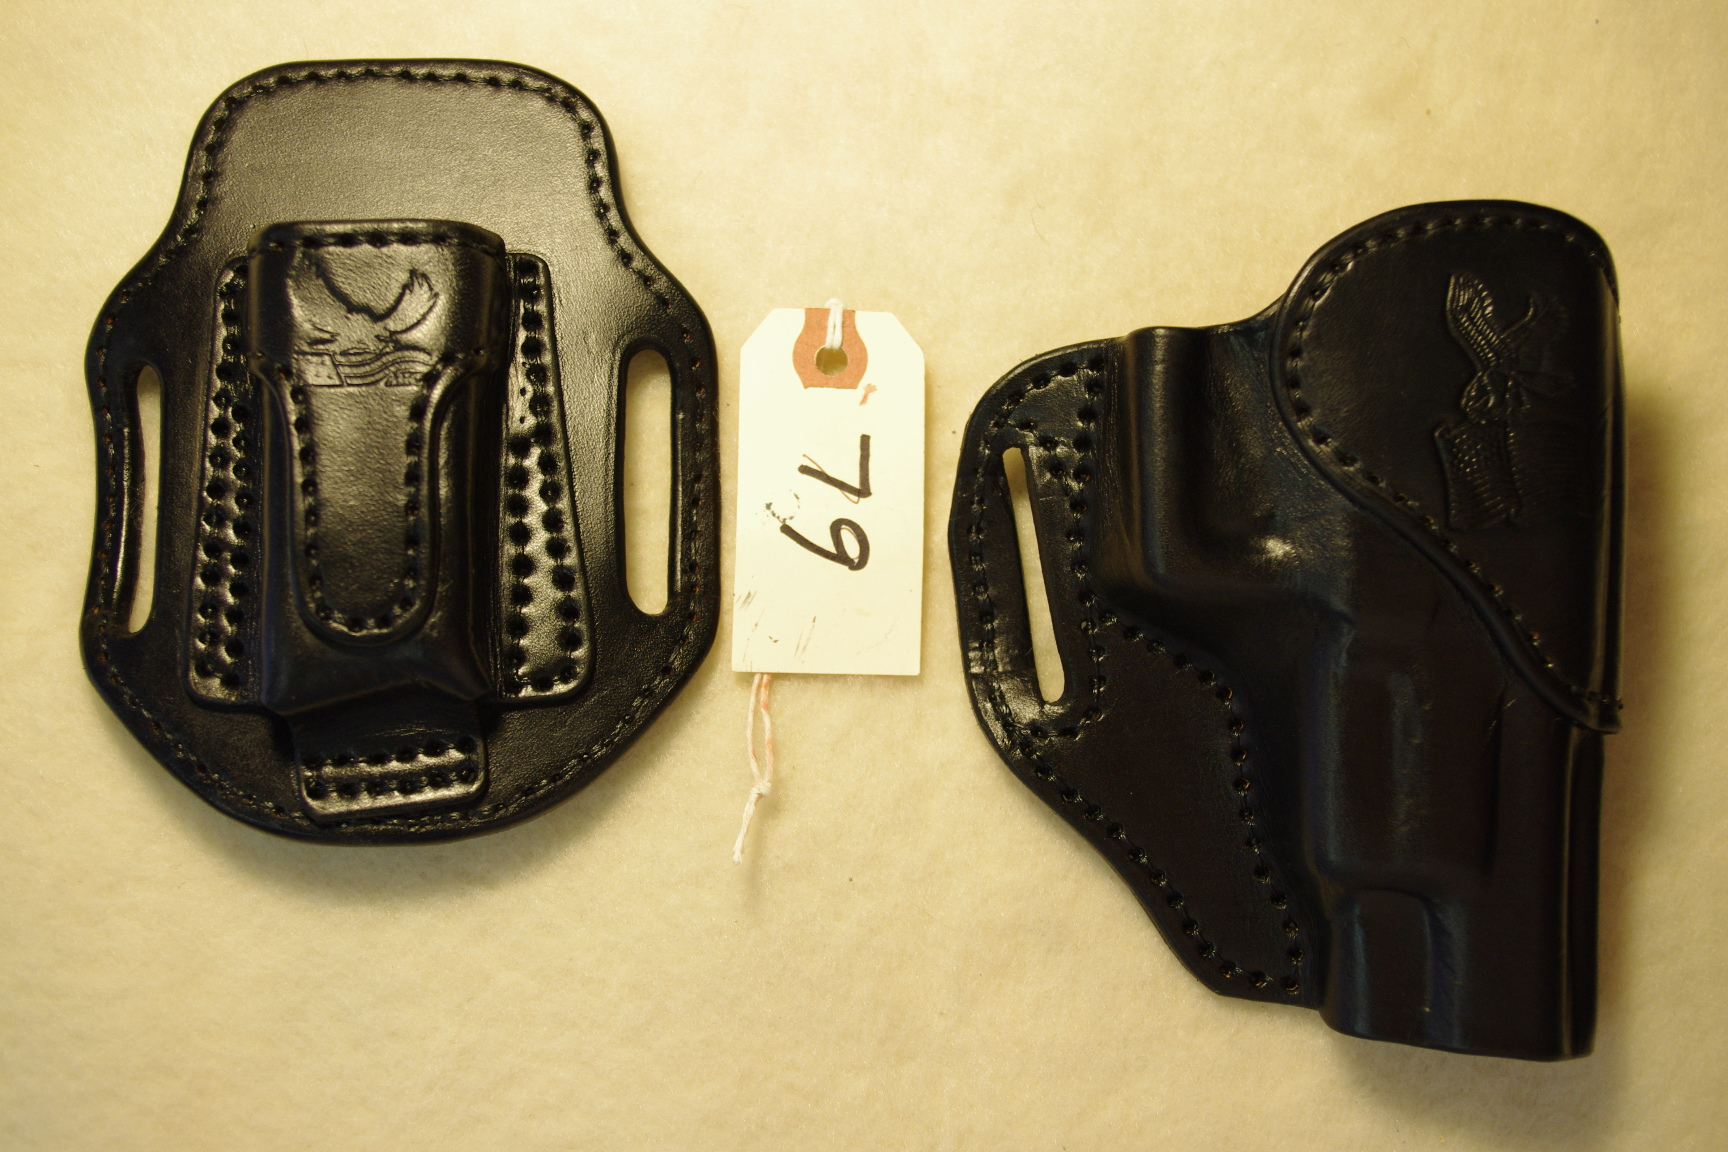 Midland OWB holster and mag pouch for Springfield XD (sold)